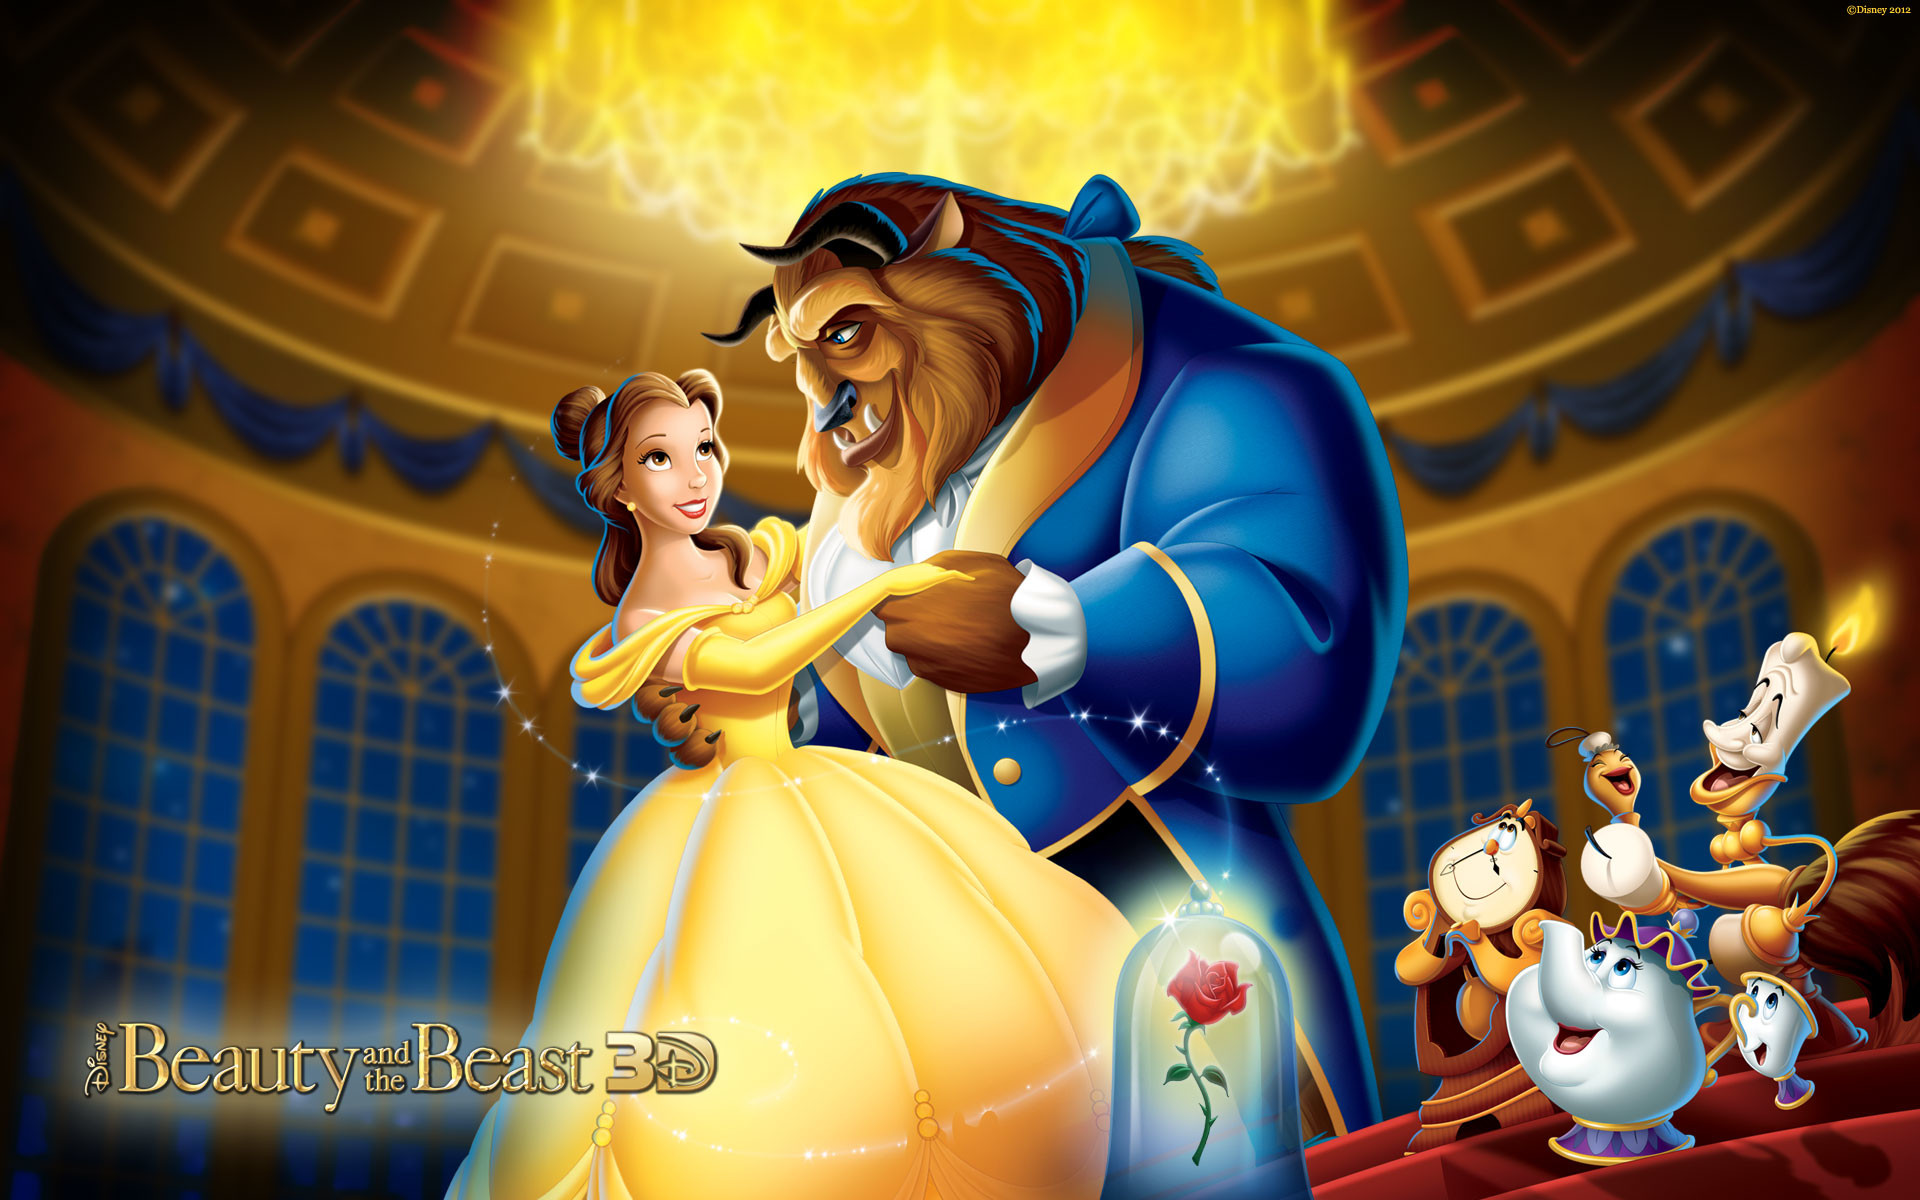 Beauty And The Beast Cartoon Wallpaper: Beauty And The Beast Wallpaper (79+ Images